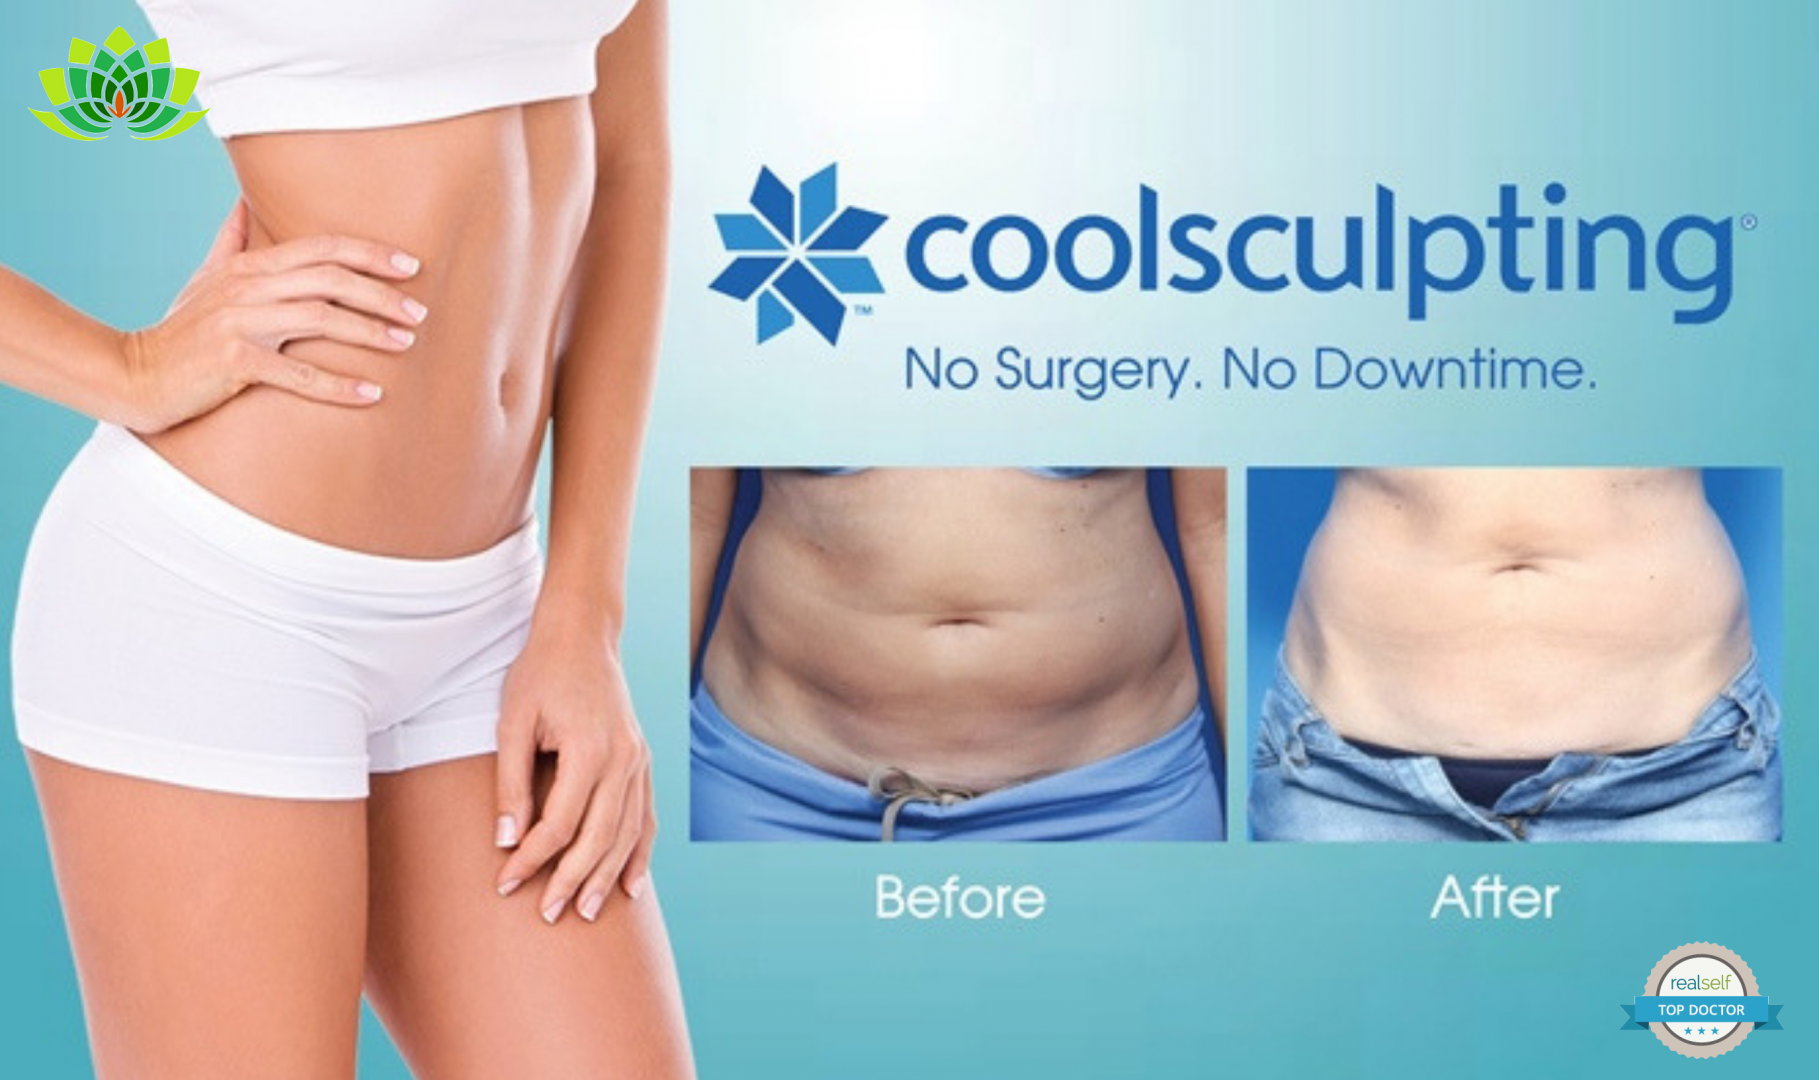 CoolSculpting: completely on-trend as an A-list treatment